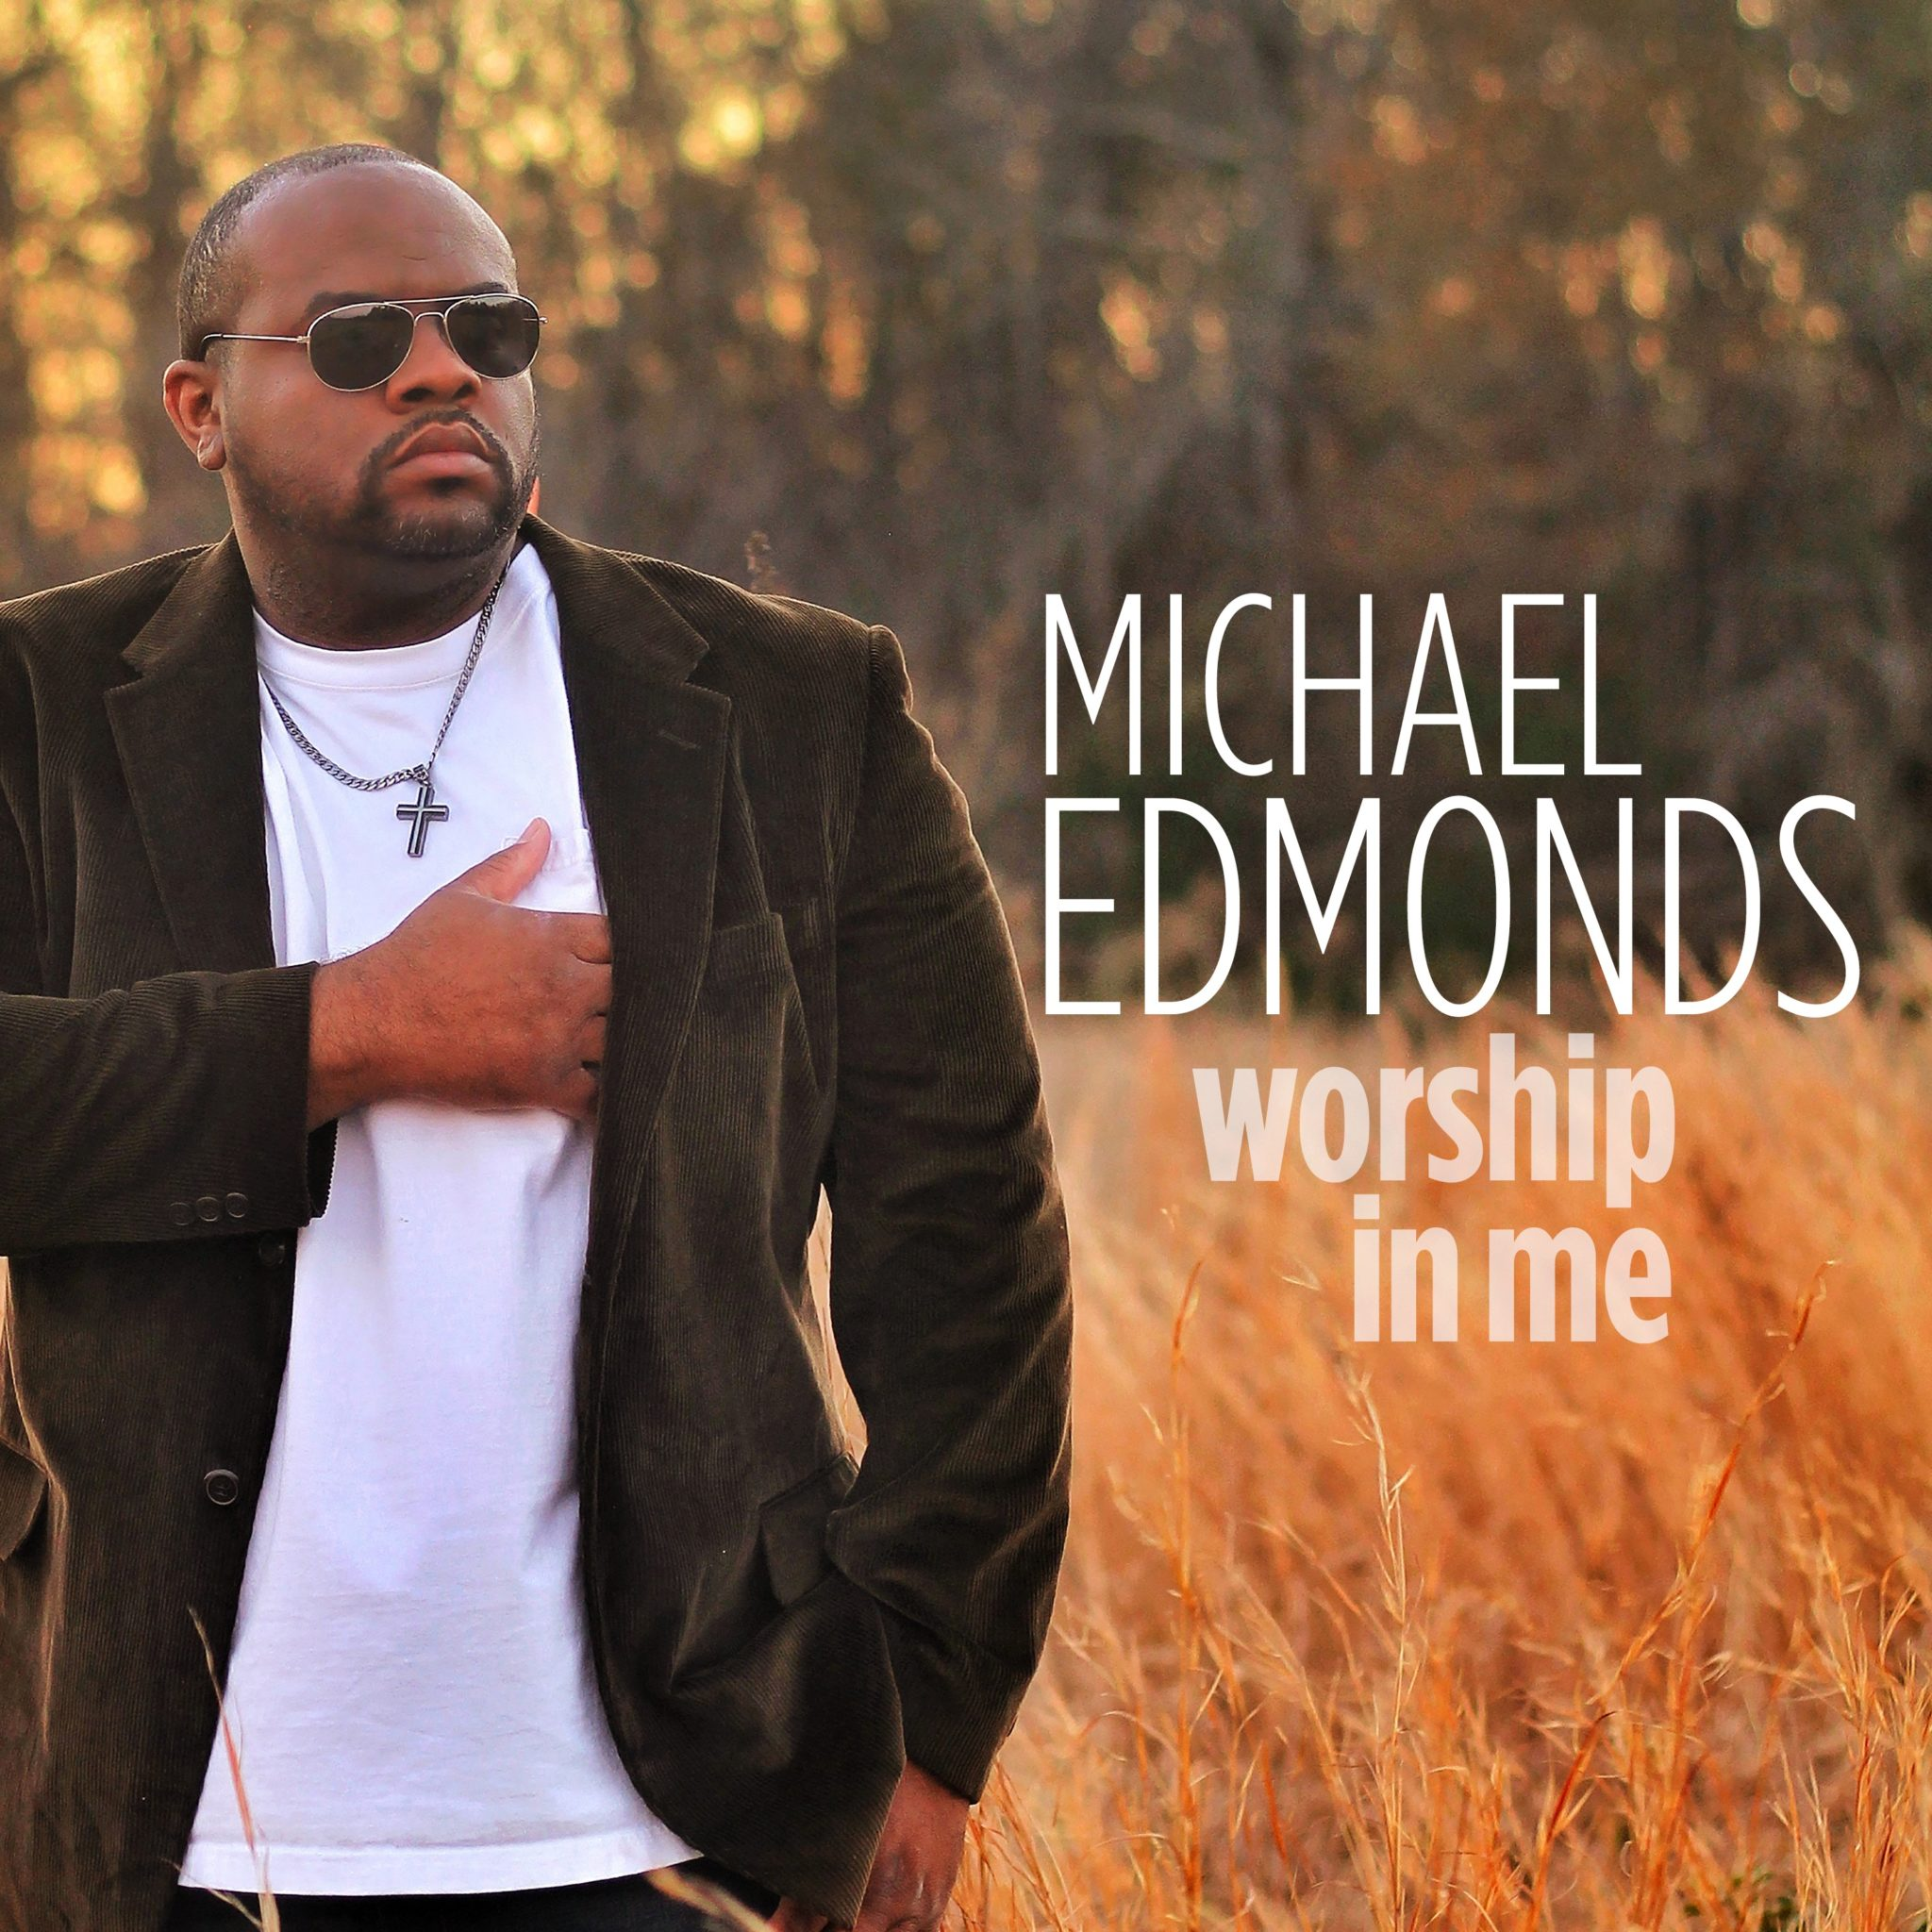 MICHAEL EDMONDS' NEW SINGLE AVAILABLE TODAY ON ITUNES